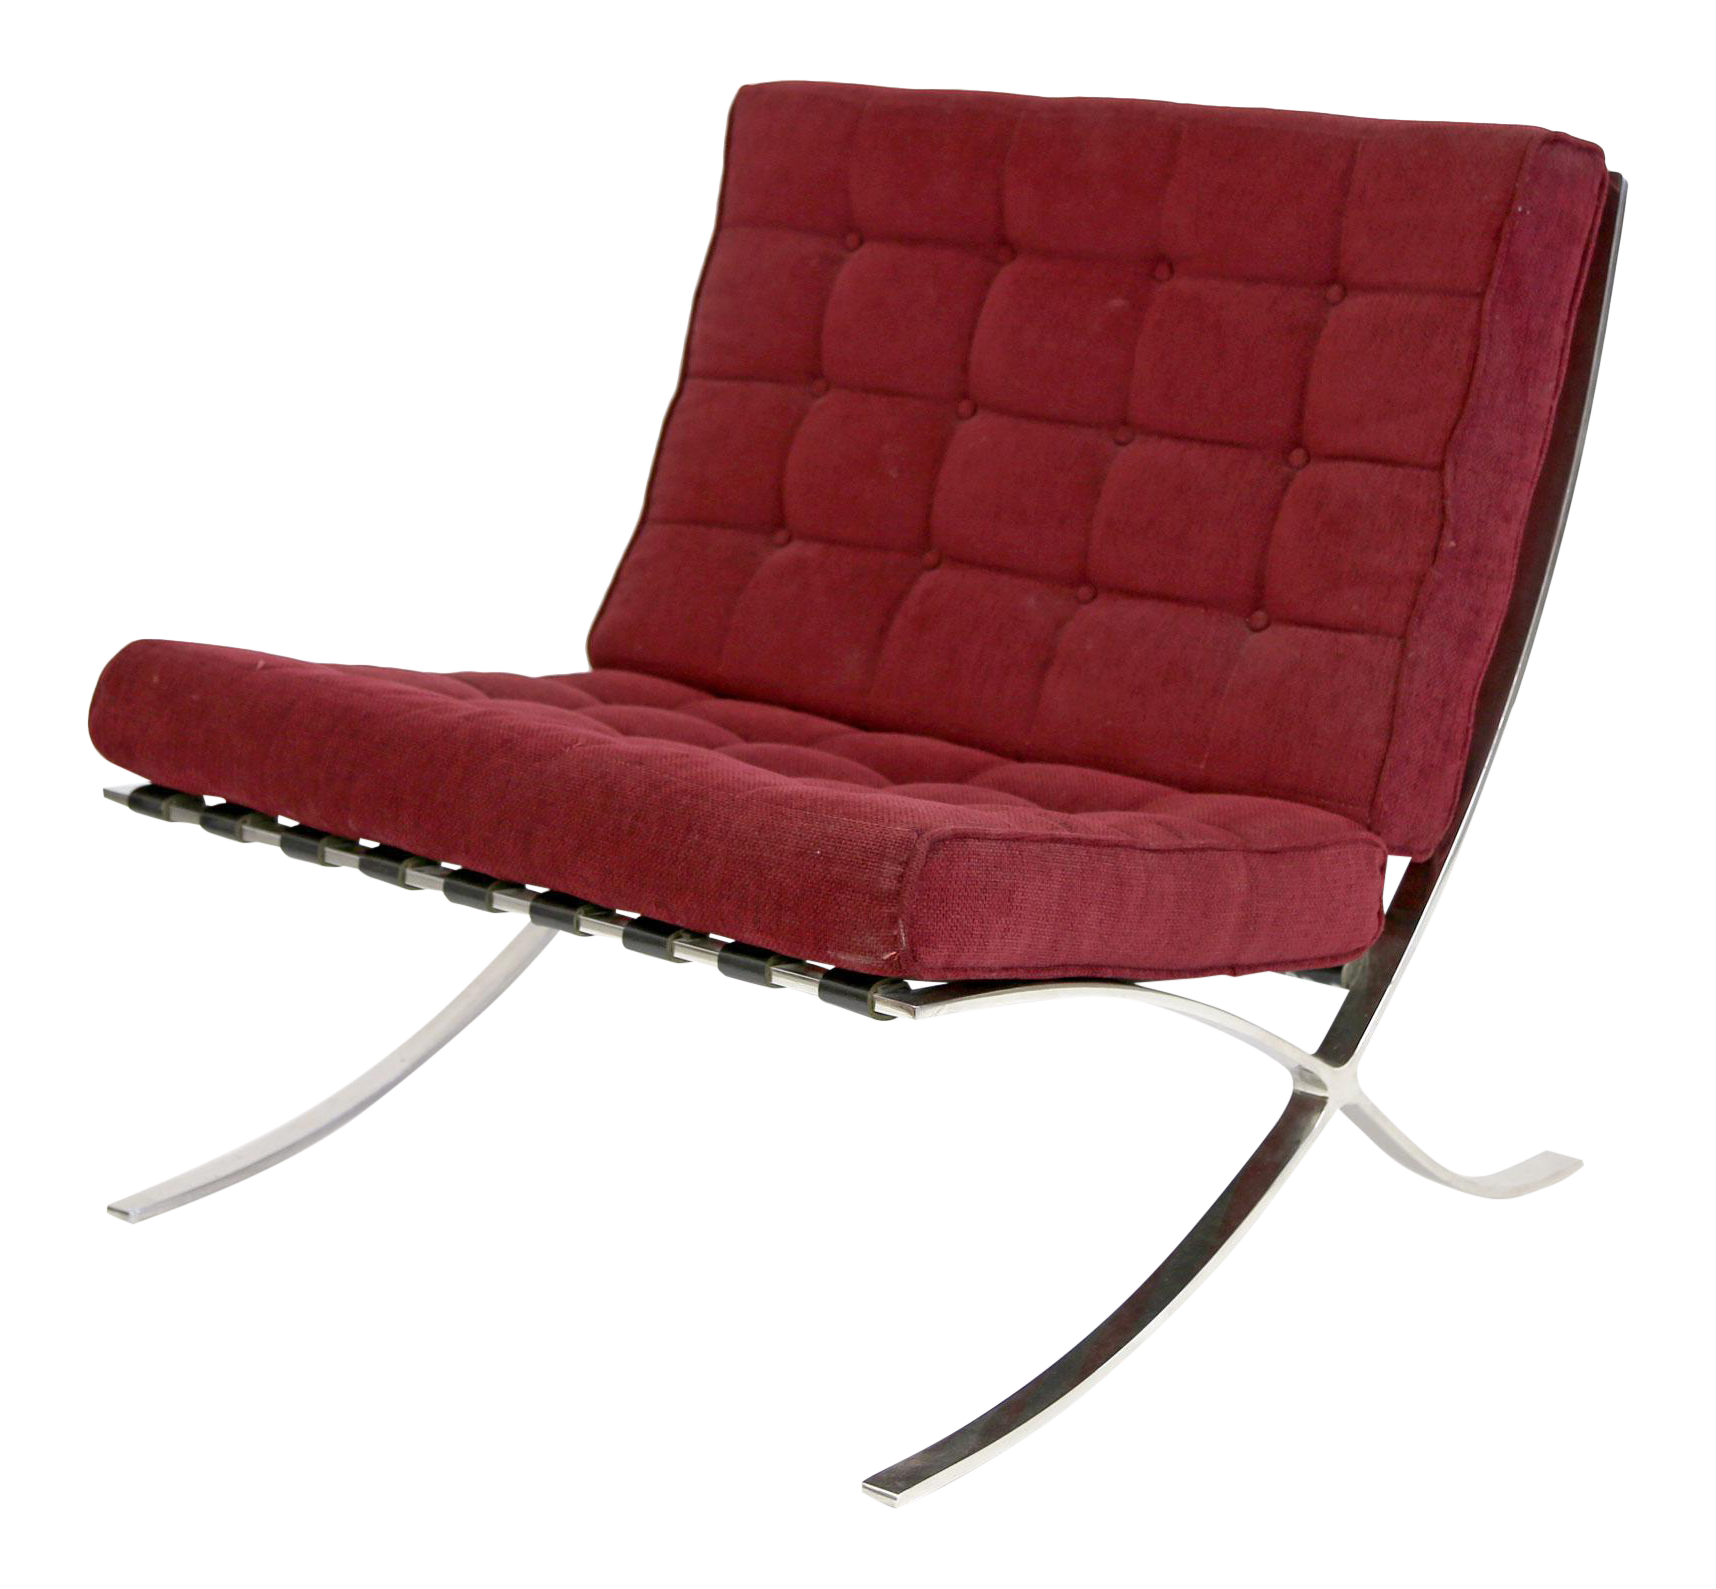 Marvelous Vintage Mies Van Der Rohe Barcelona Chair Reproduction In Burgundy  Upholstery